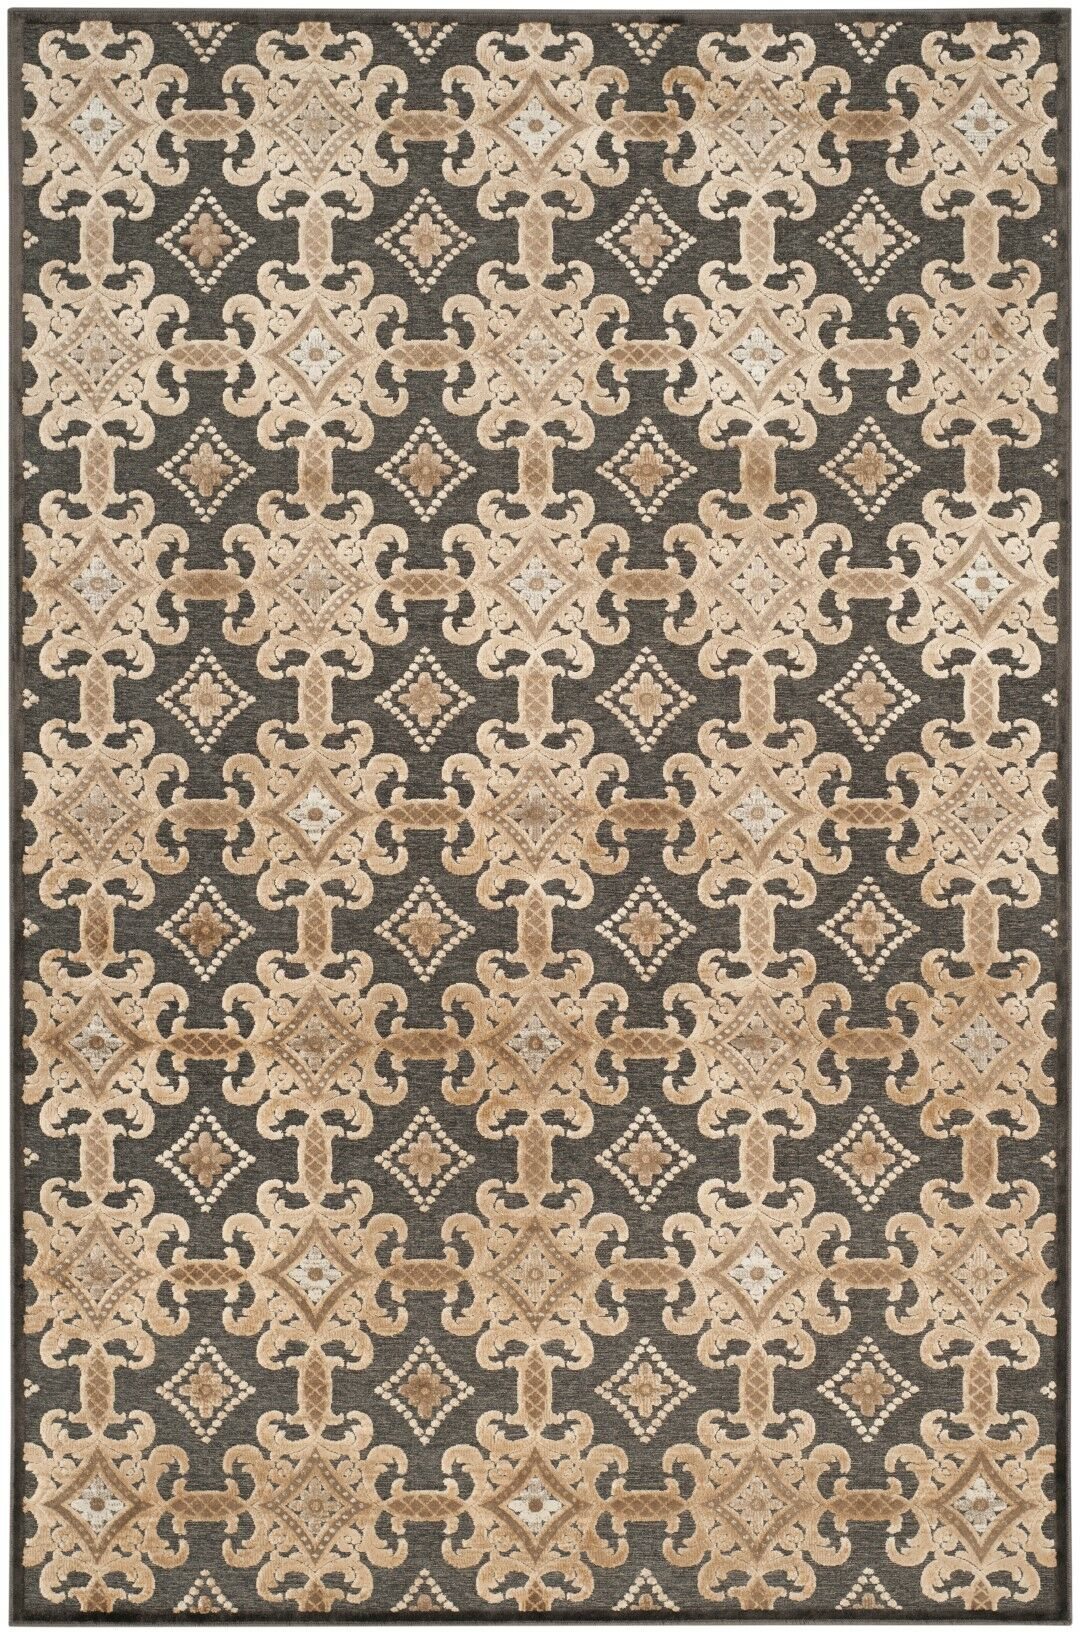 Martha Stewart Soft Anthracite/Anthracite Area Rug Rug Size: Rectangle 3'3